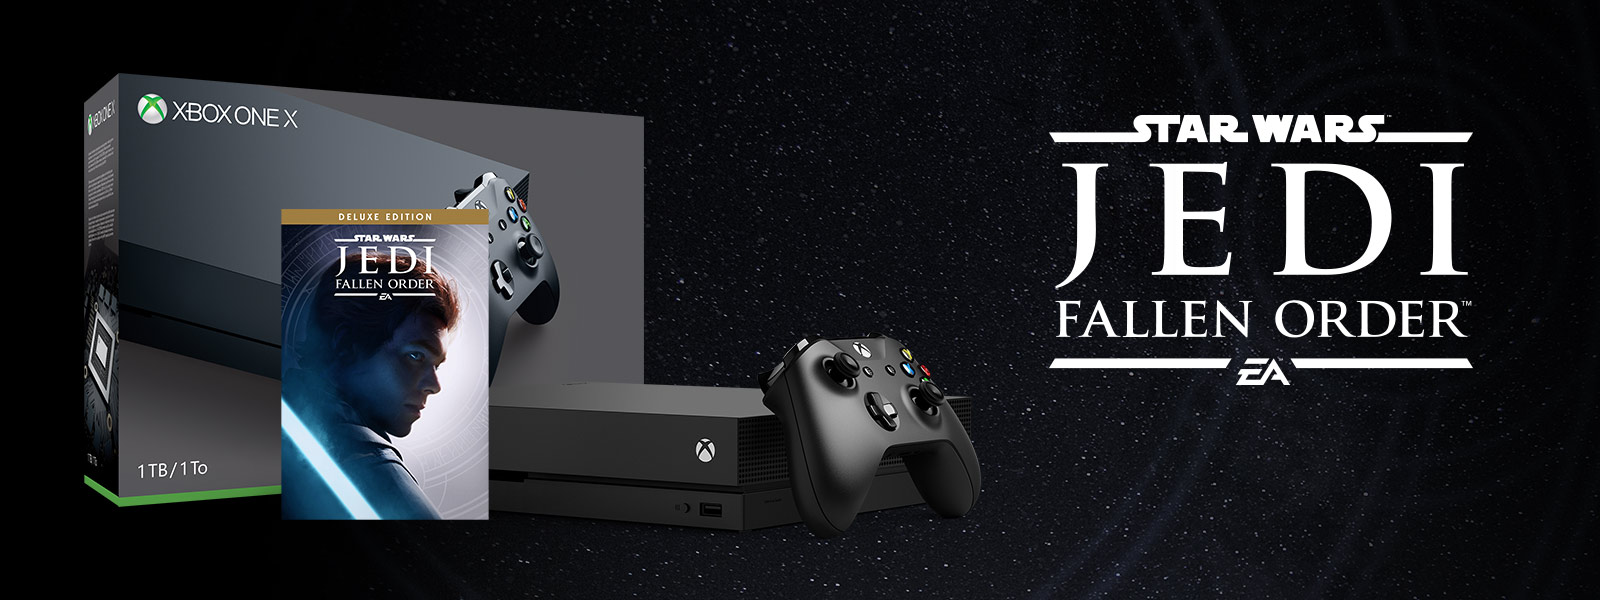 Xbox One X Star Wars Jedi: Fallen Order bundle art in front of mountains and a road with leaves